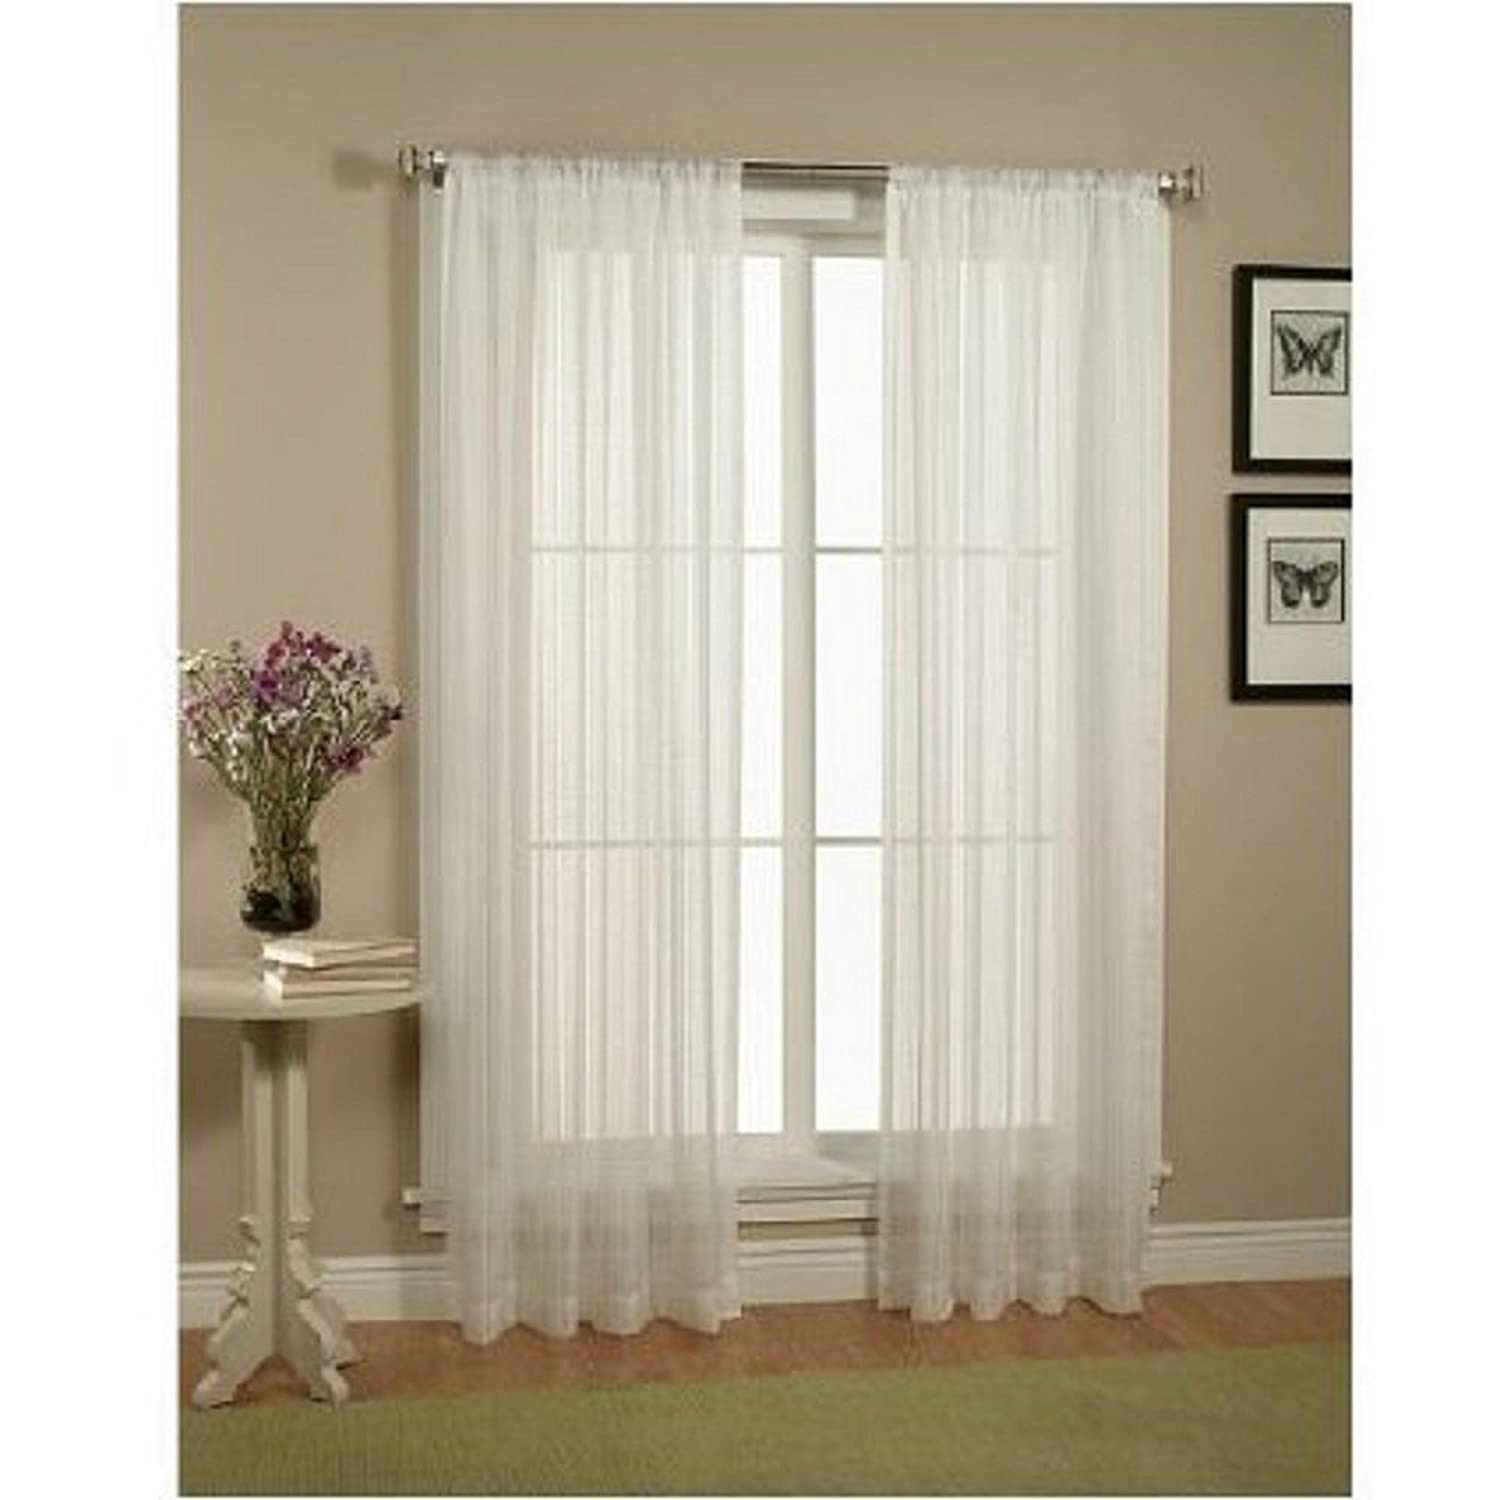 details our curtain dusters or and steam no beautiful window your curtains accents doing national drapes experienced to damage will absolutely remain treatments cleaning team ensure decorative fine